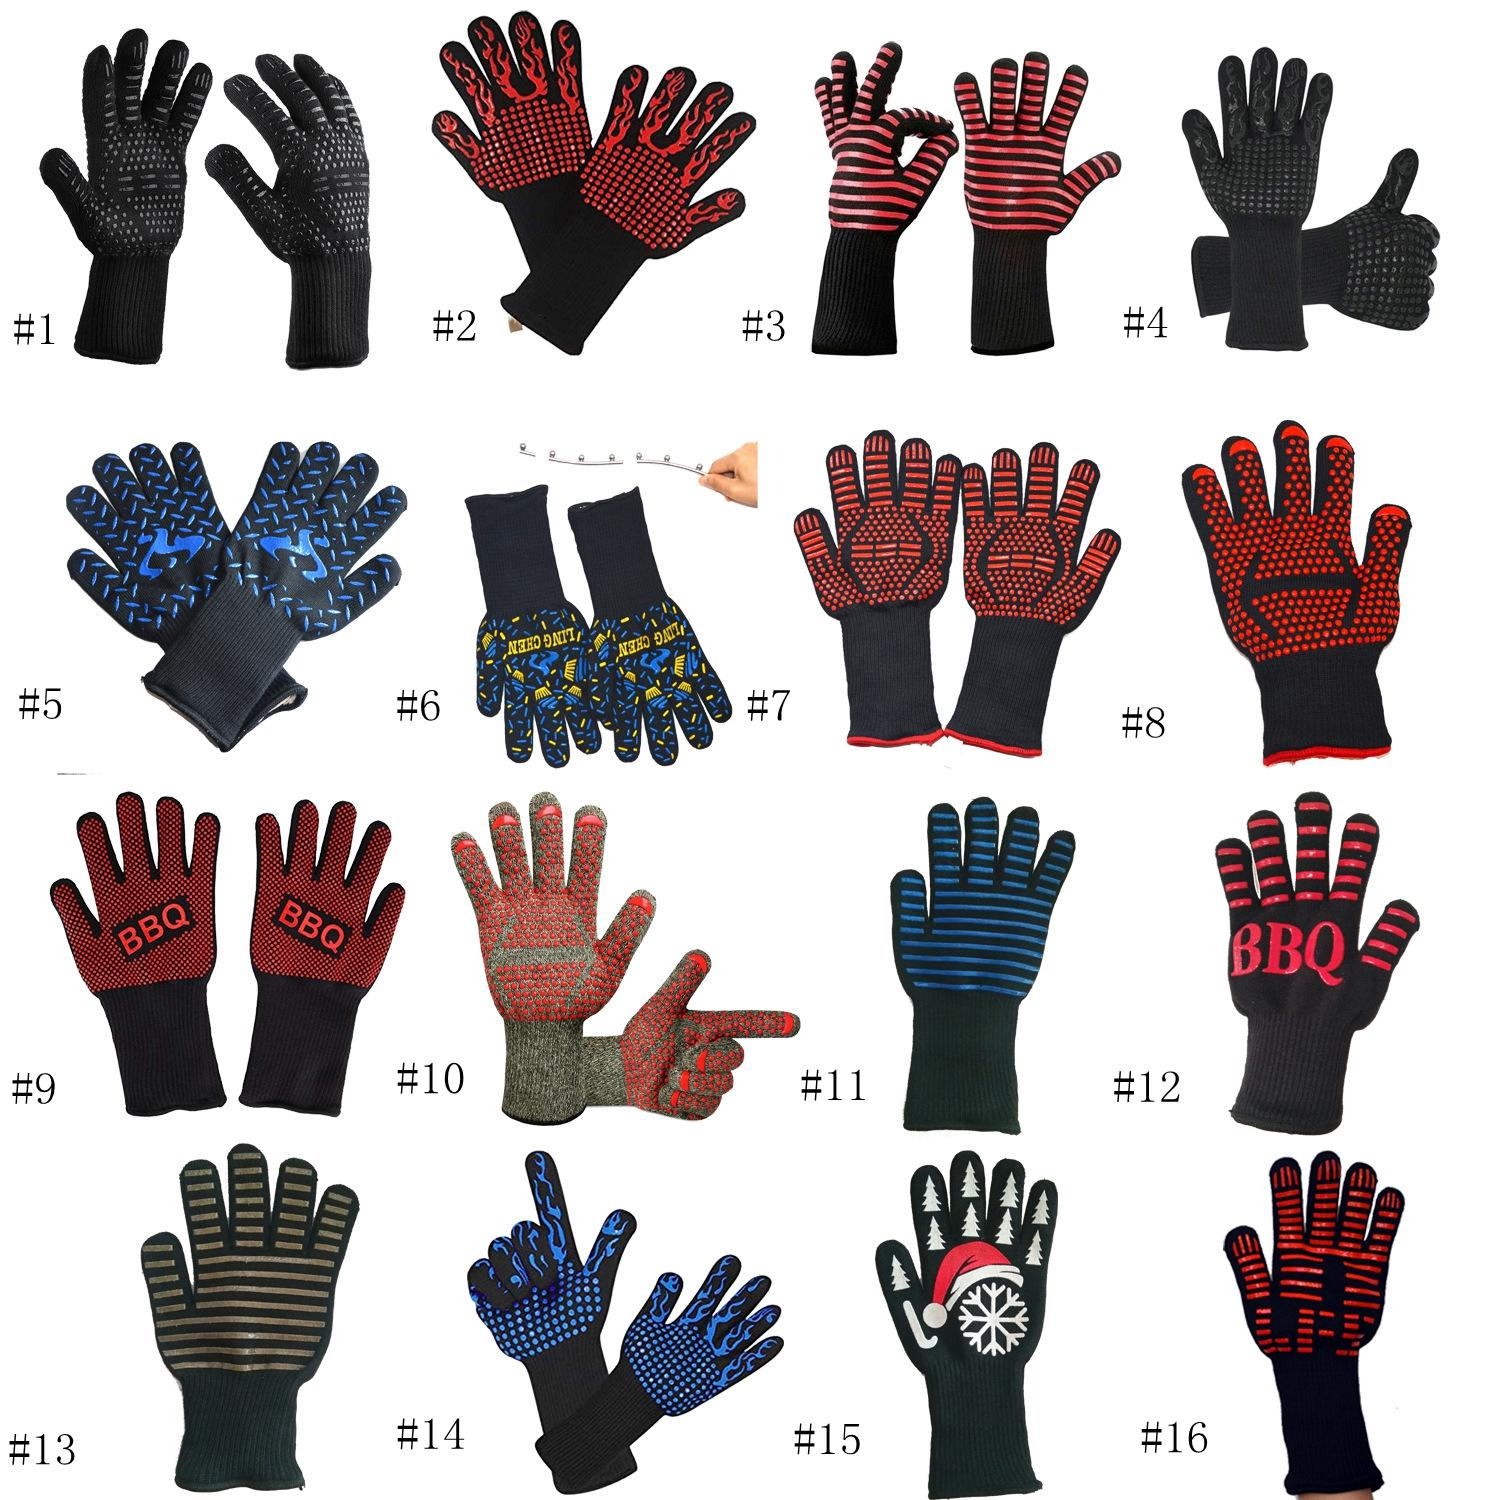 Heat Resistant Gloves Great For Oven BBQ Baking Cooking Mitts In Insulated Silicone BBQ Gloves Kitchen Pastry Tools EEA859-3